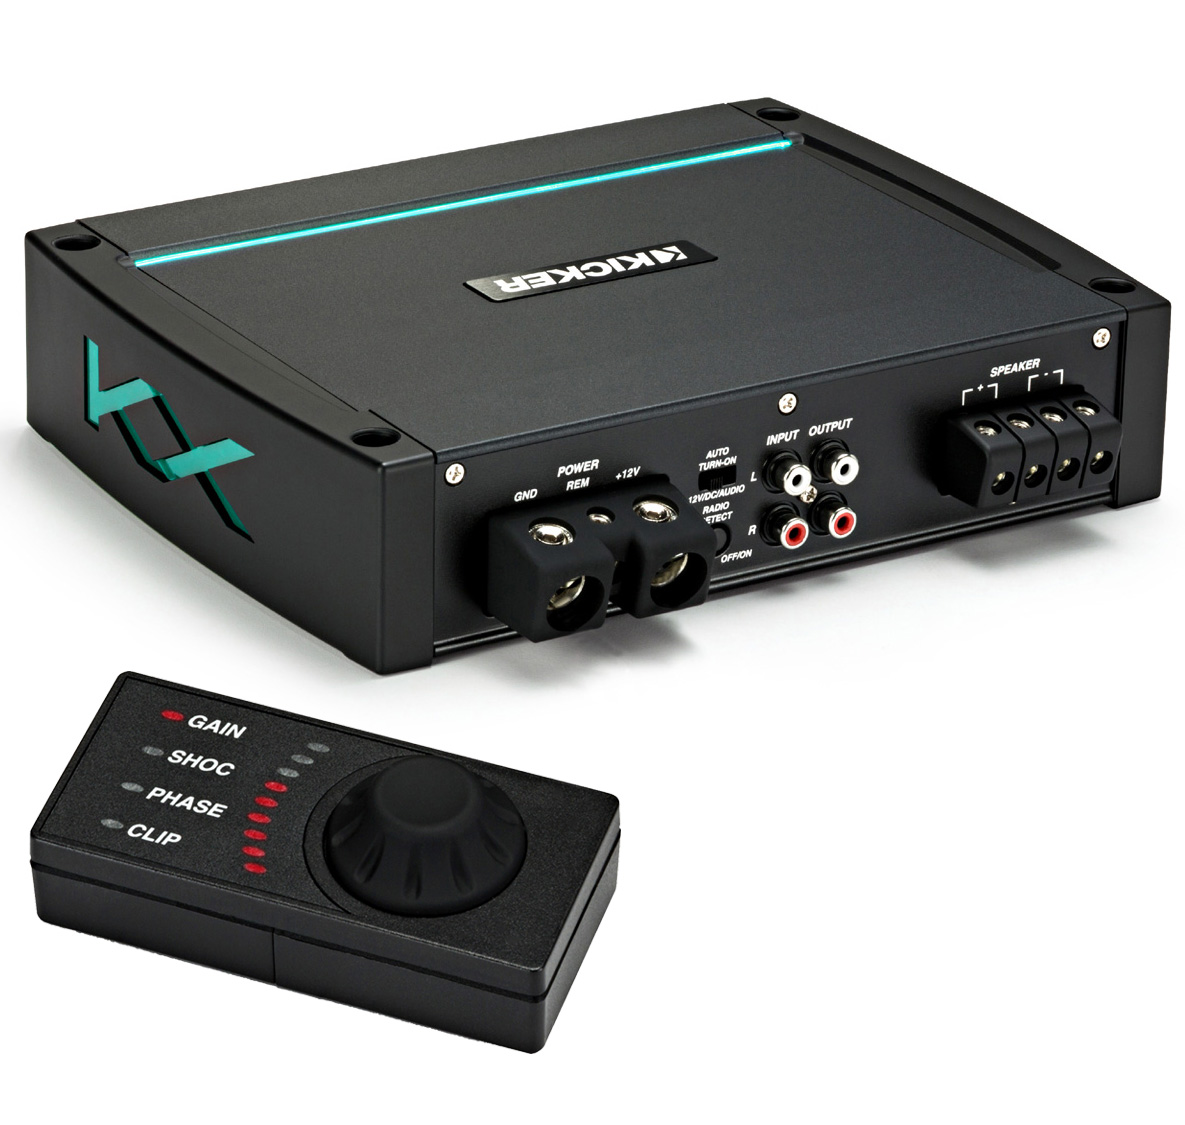 Kicker KXMA1200.1 Marine Audio Class D Boat Sub Amp 2400W Amplifier 44KXMA12001 - Limited Stock